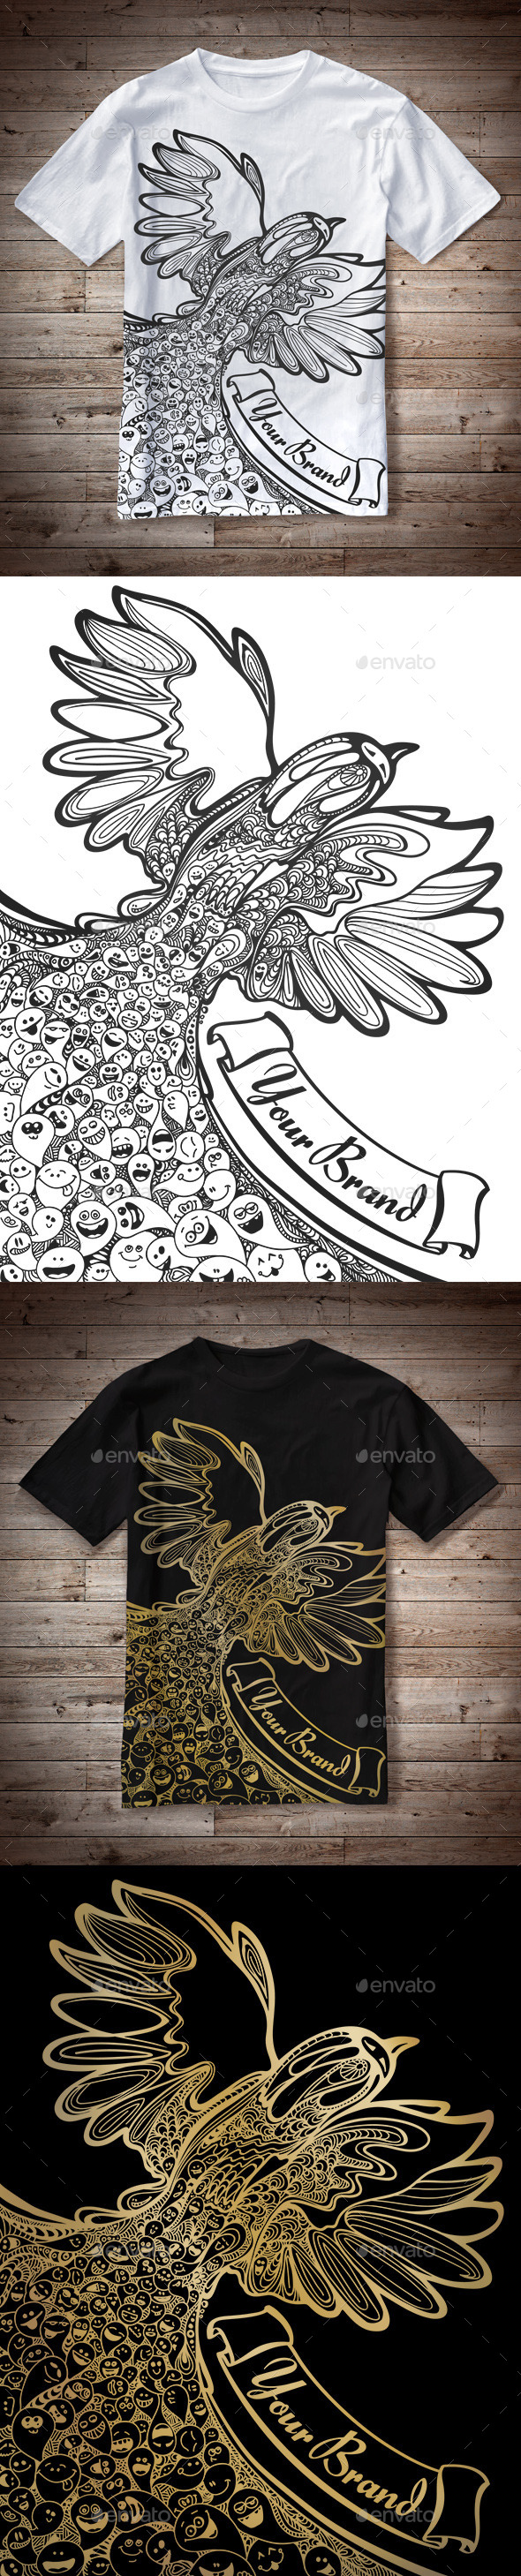 T-Shirt Illustration Bird Doodles - T-Shirts